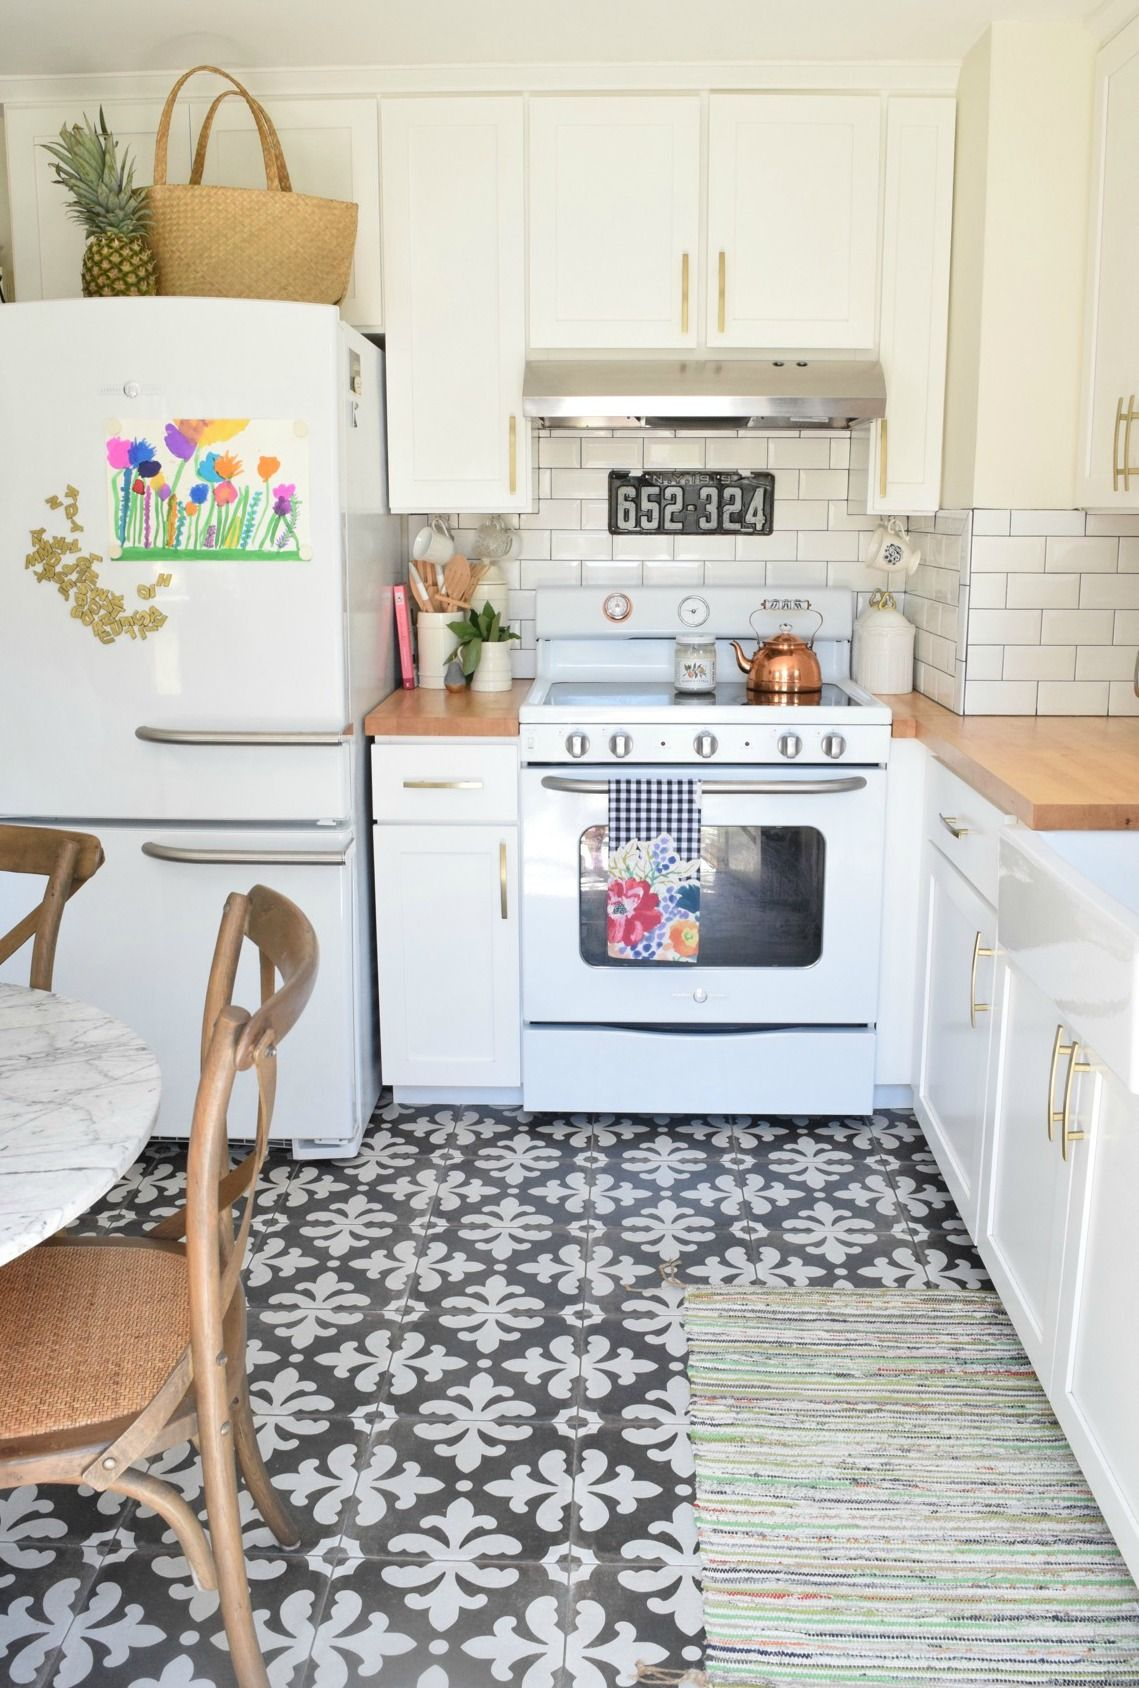 Decor N Tile Captivating Summer Home Tour And Seasonal Decor Changes  Kitchen Updates Design Ideas